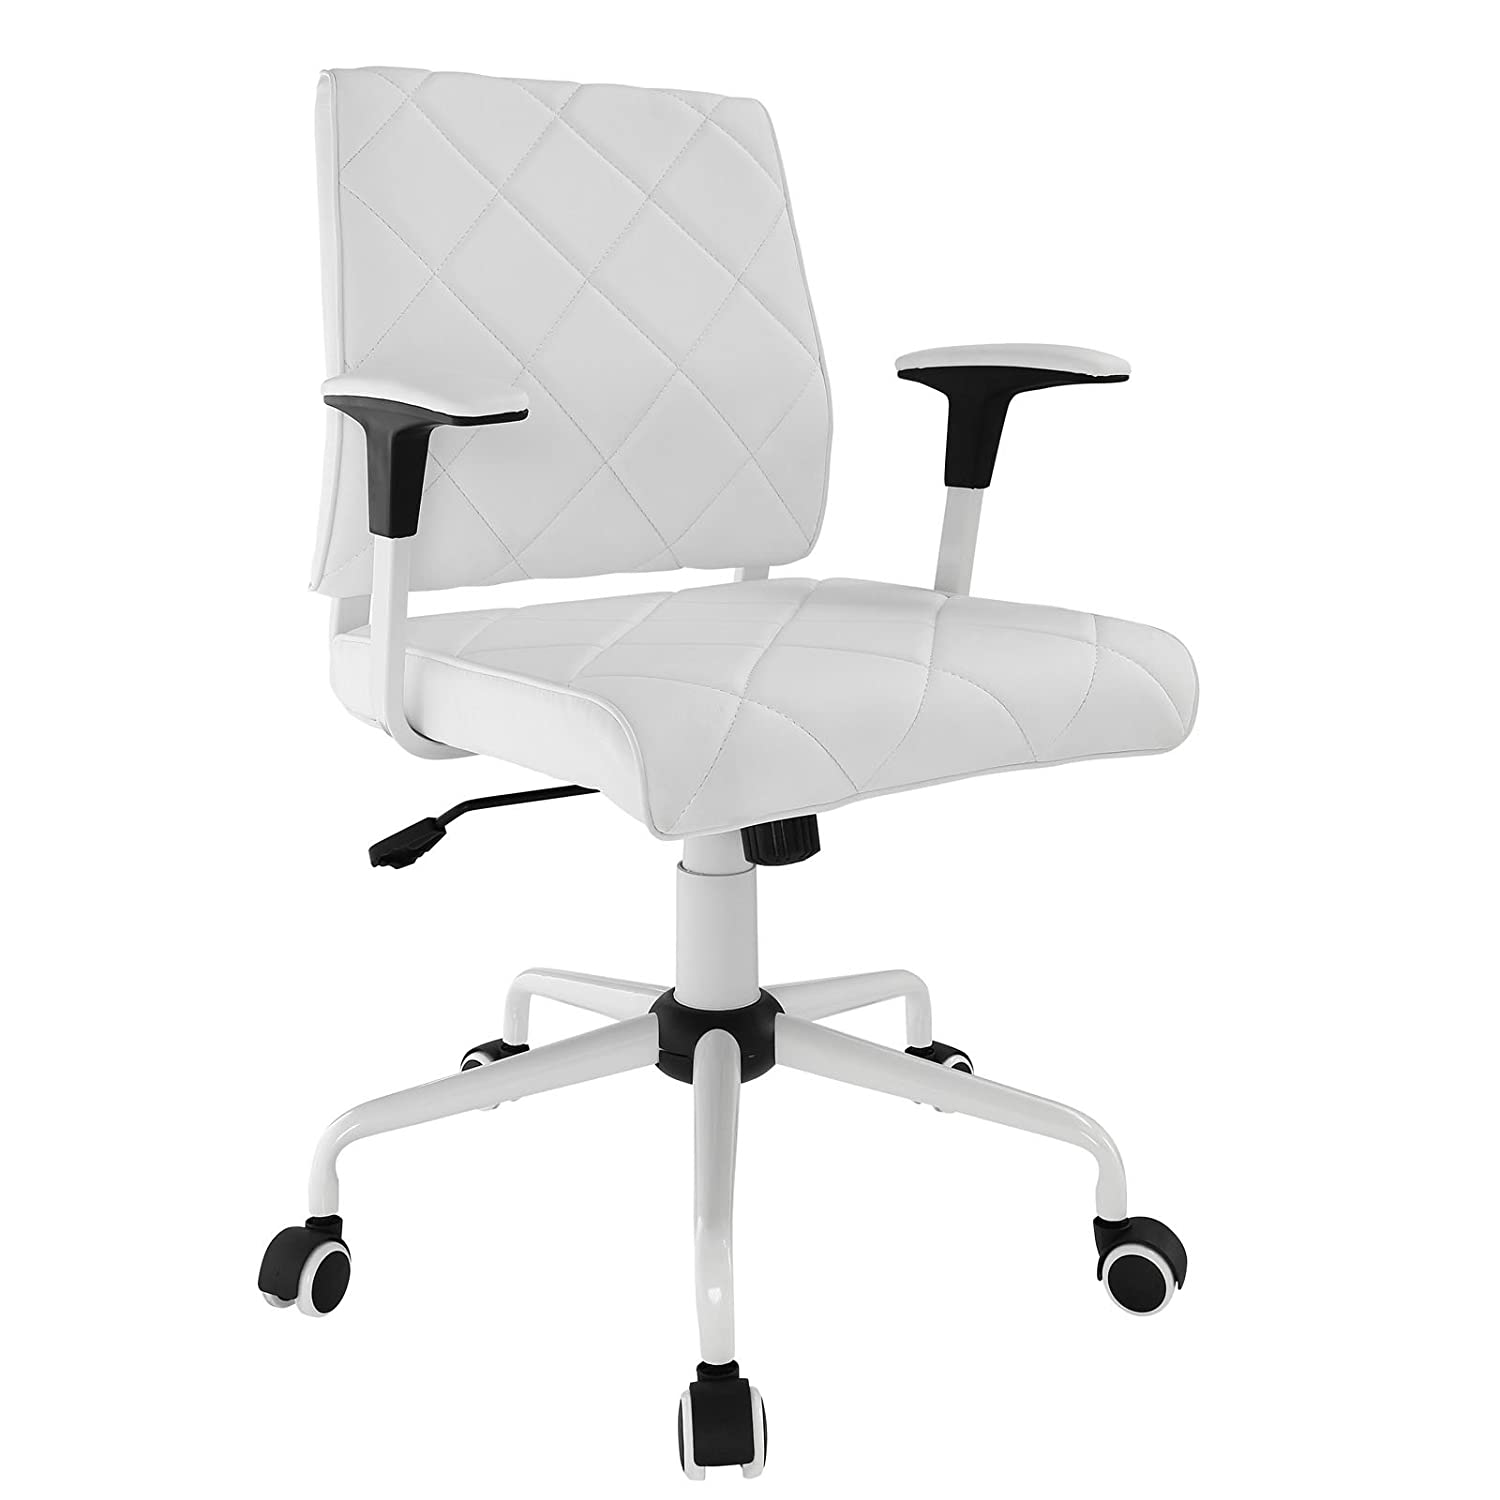 Cheap Office Chairs Part - 28: Modway Lattice Vinyl Office Chair, White